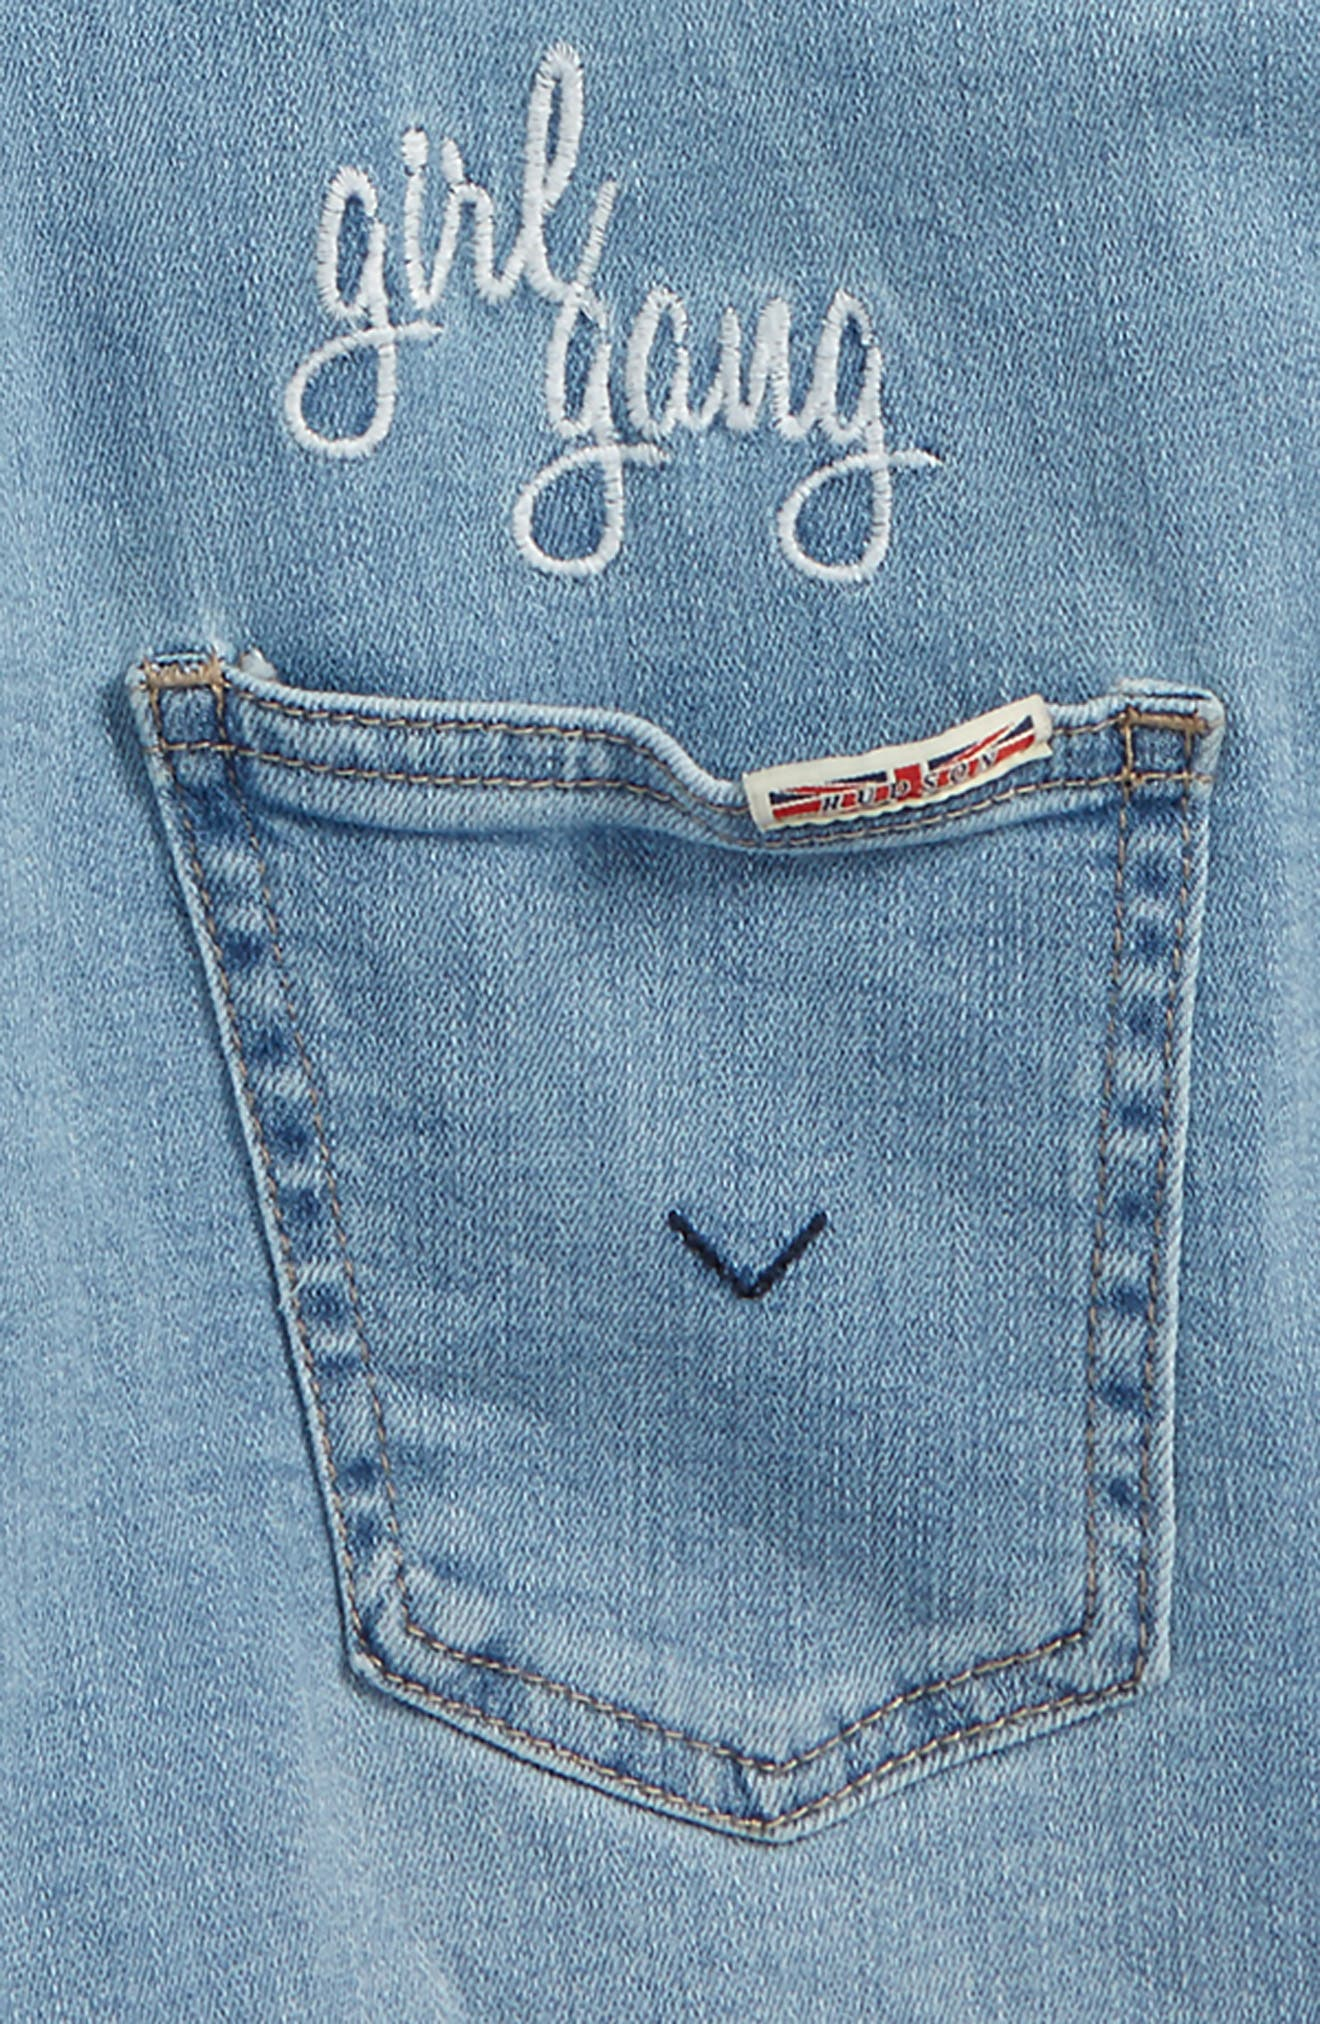 Girl Gang Denim Romper,                             Alternate thumbnail 3, color,                             Sand Blue